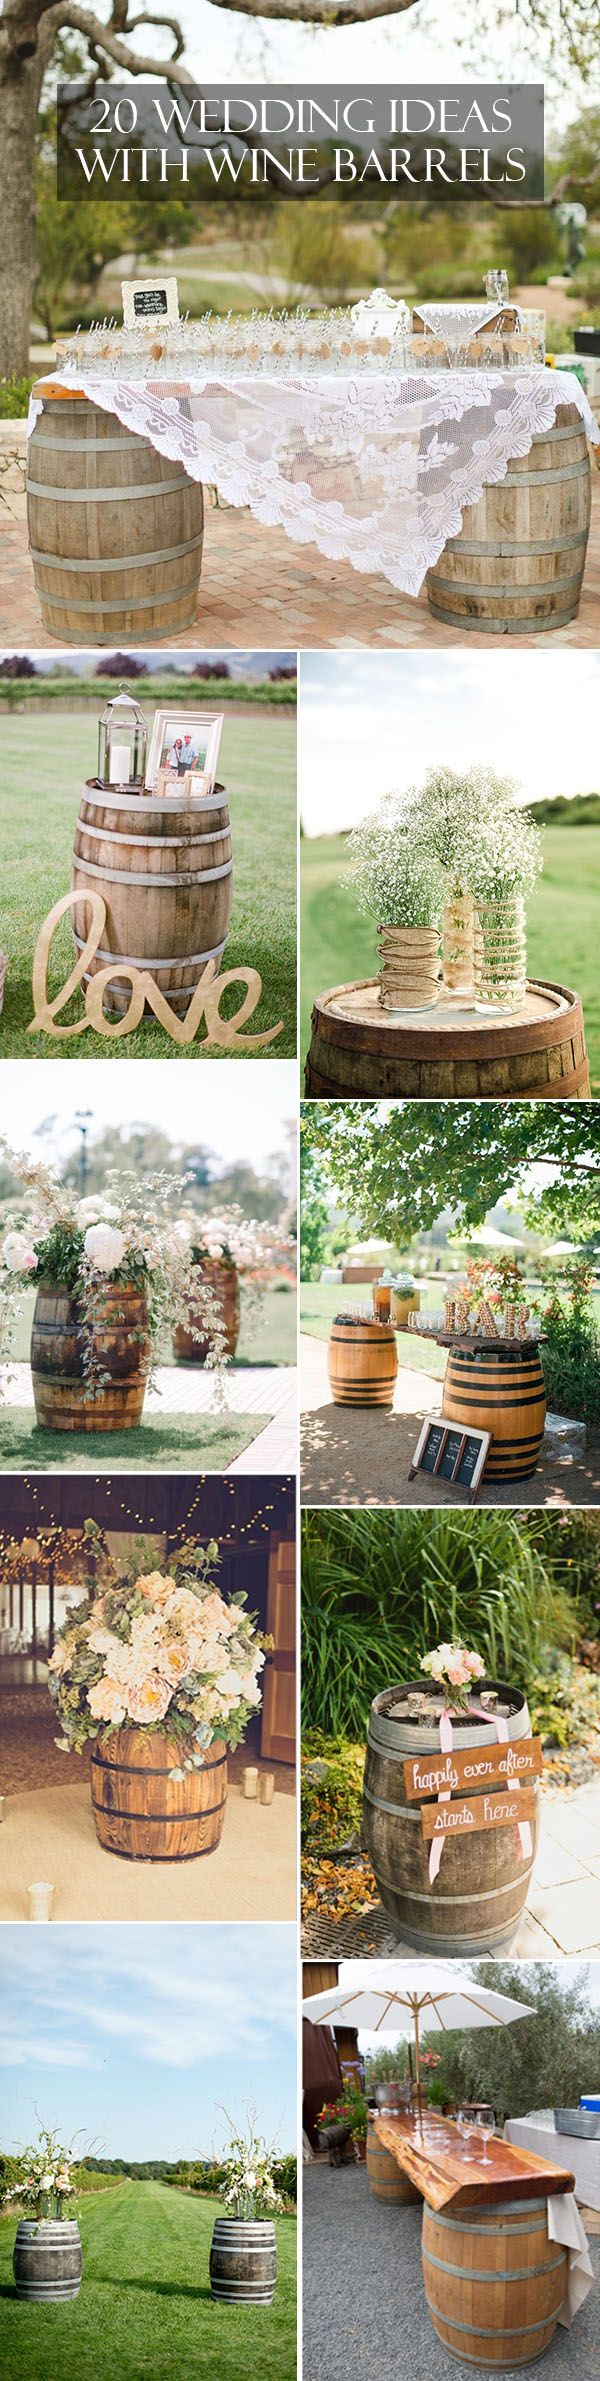 Great ways to use wine barrels for country rustic wedding.